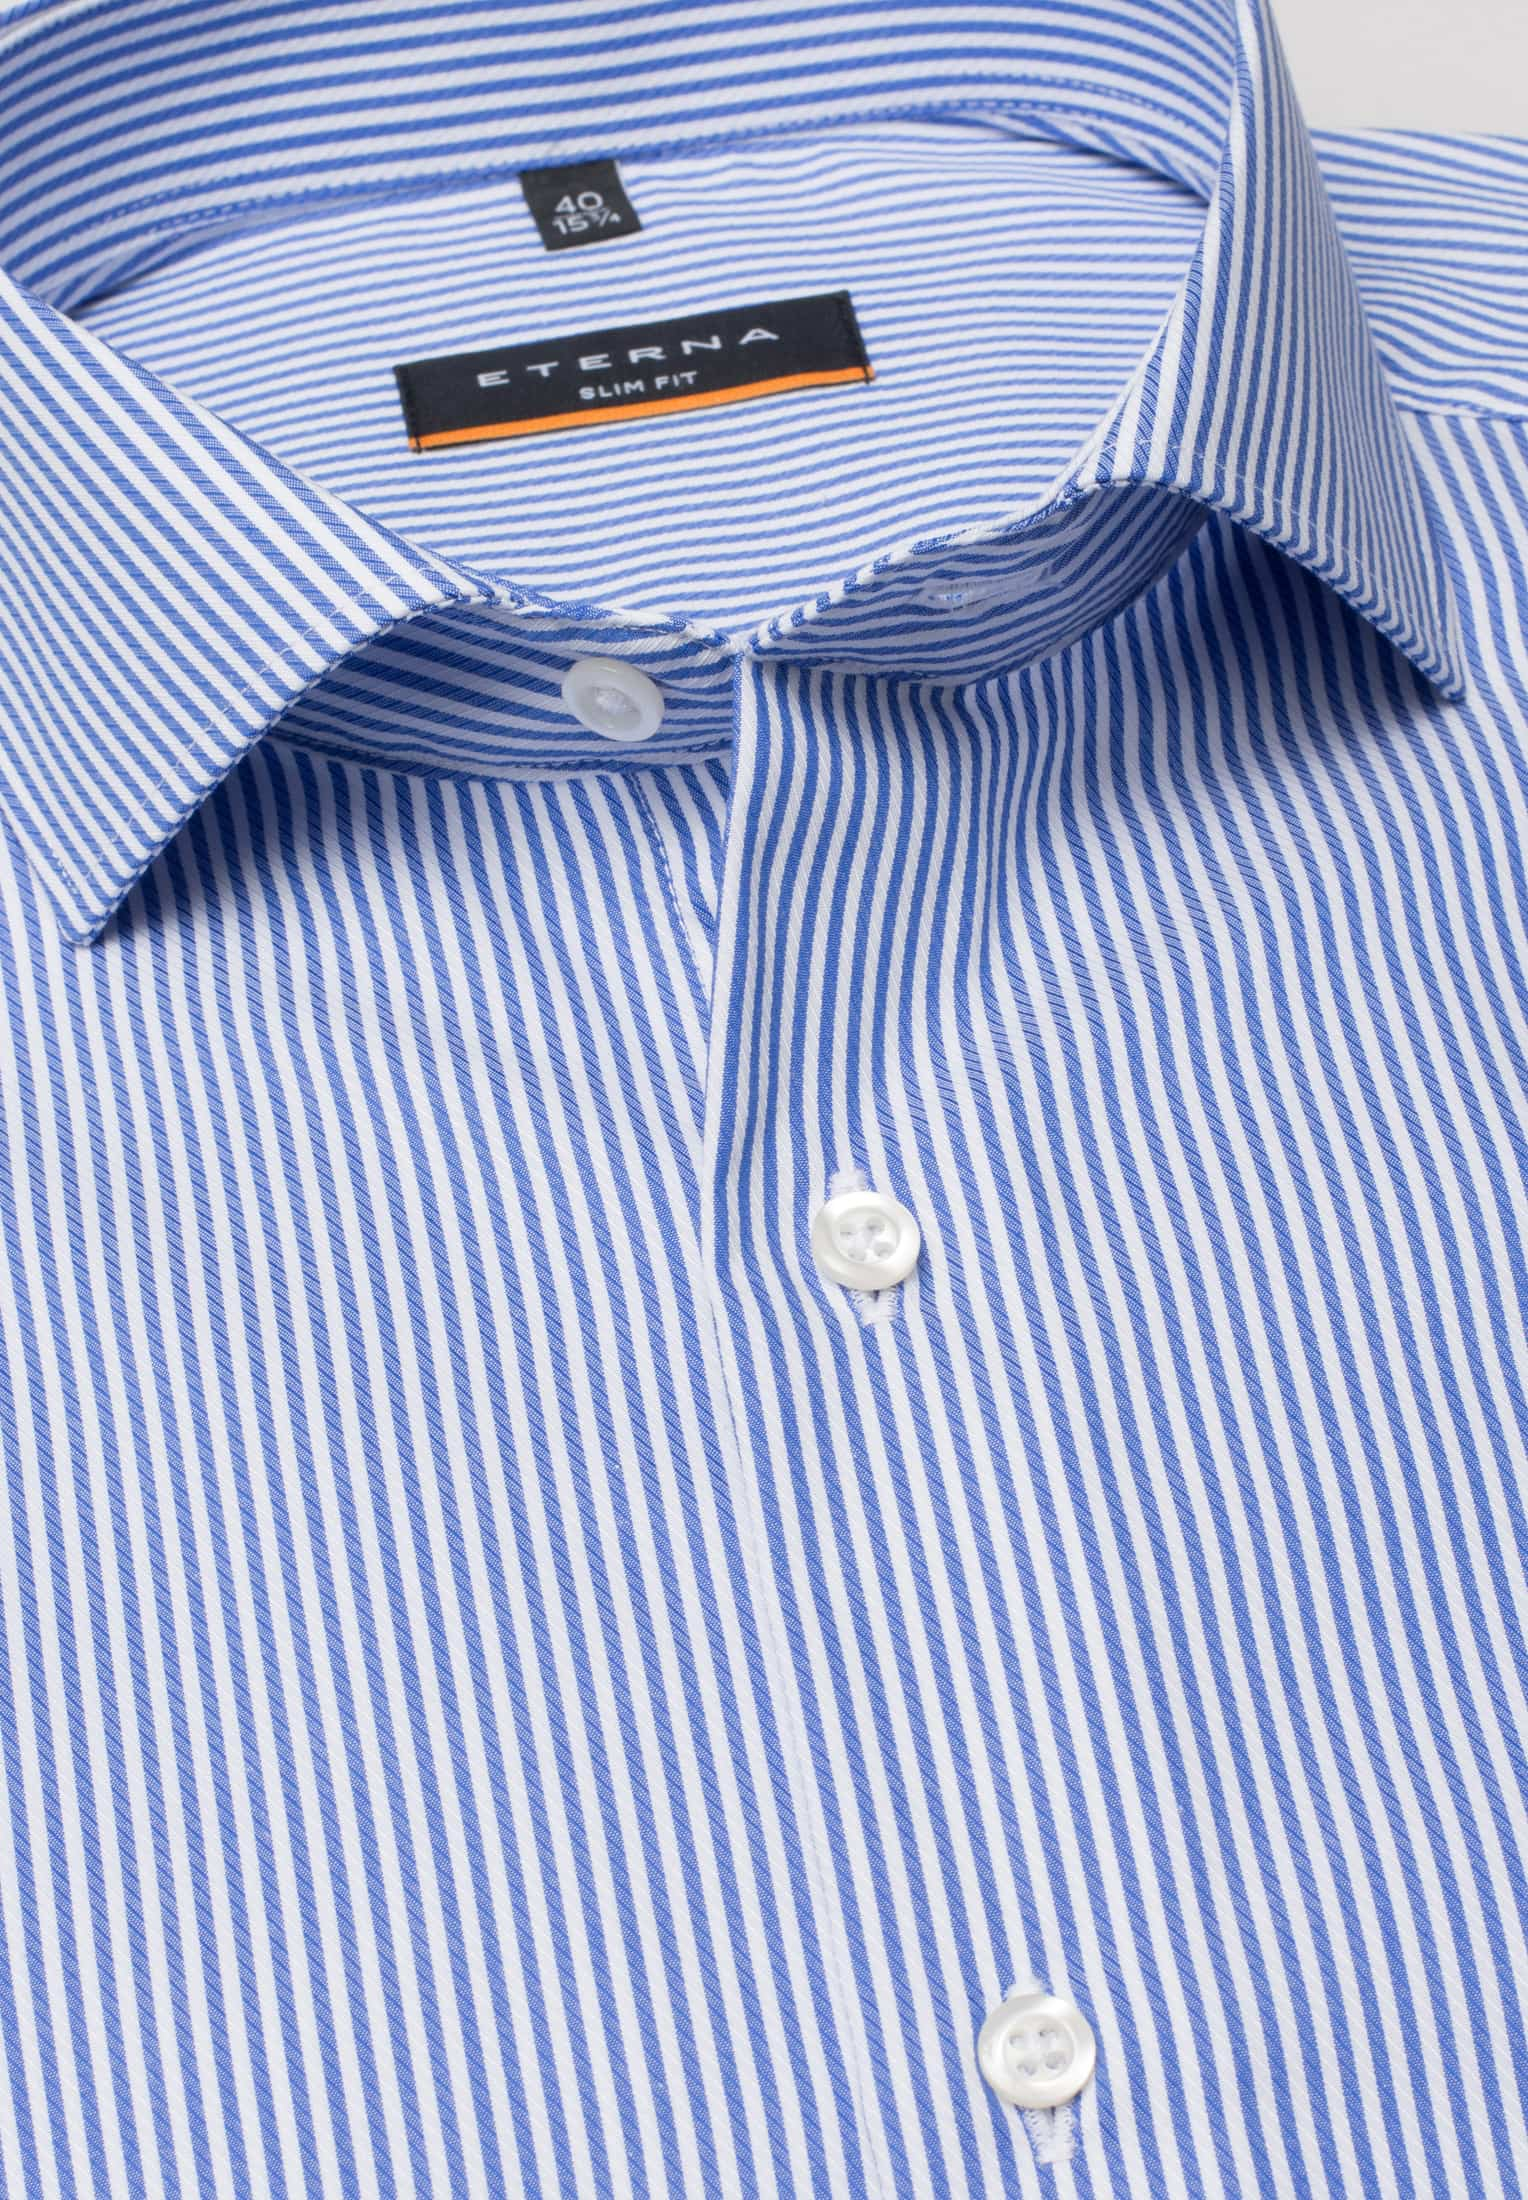 38e6c871ddf2 ETERNA LONG SLEEVE SHIRT SLIM FIT TWILL LIGHT BLUE / WHITE STRIPED. Order  number: 8992_16F482_67_43. Previous